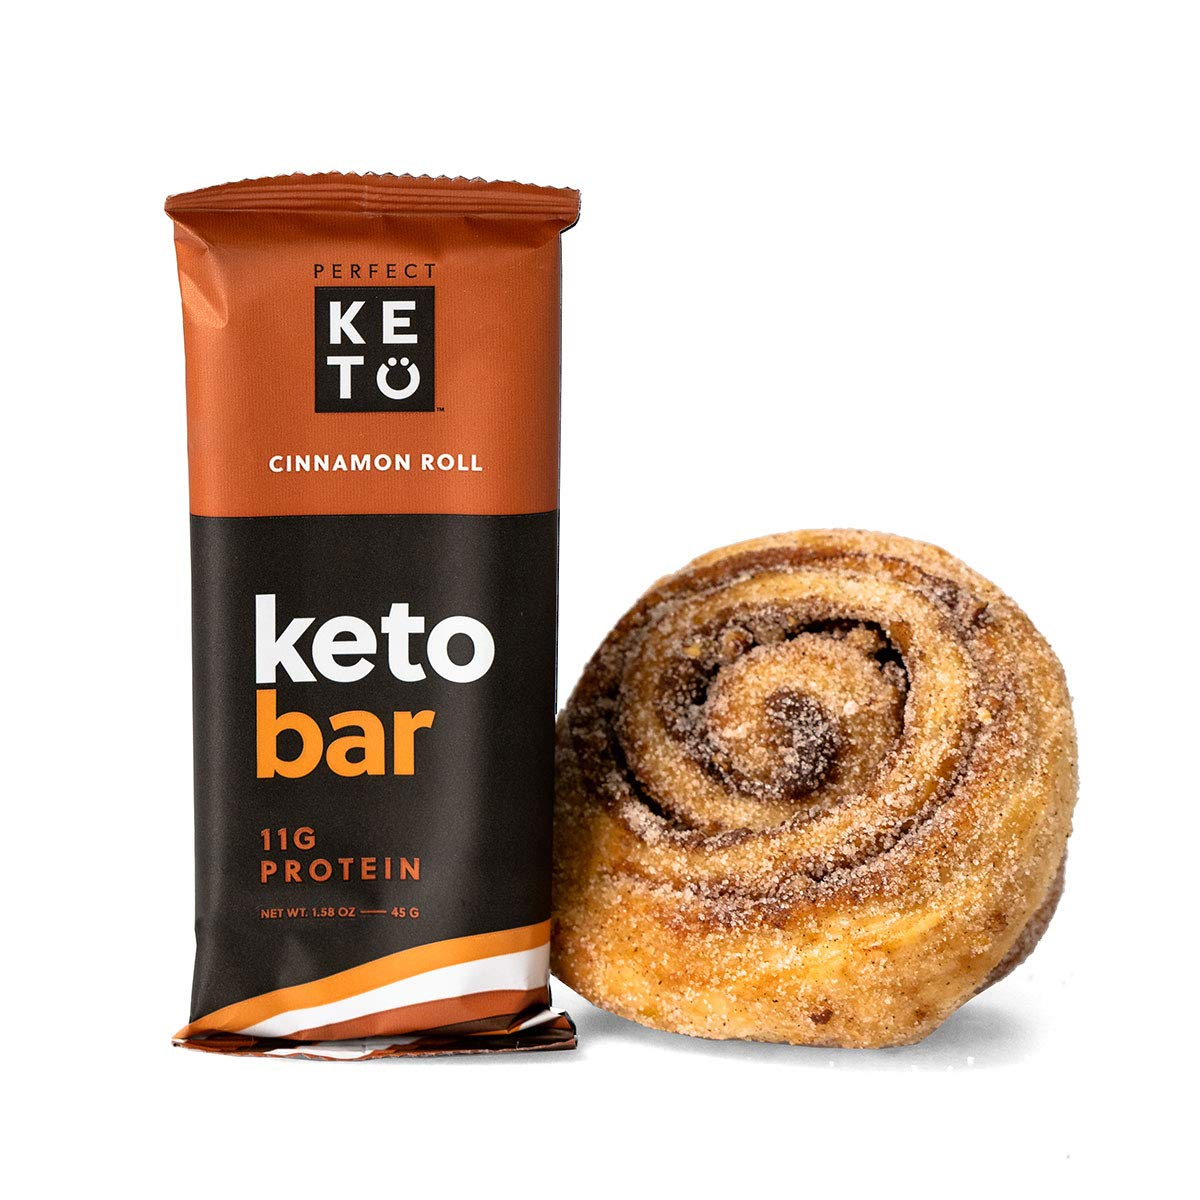 Perfect Keto Bar, Keto Snack, No Added Sugar. 10g of Protein, Coconut Oil, and Collagen, with a Touch of Sea Salt and Stevia. (12 Bars (1 Box), Cinnamon Roll) by Perfect Keto